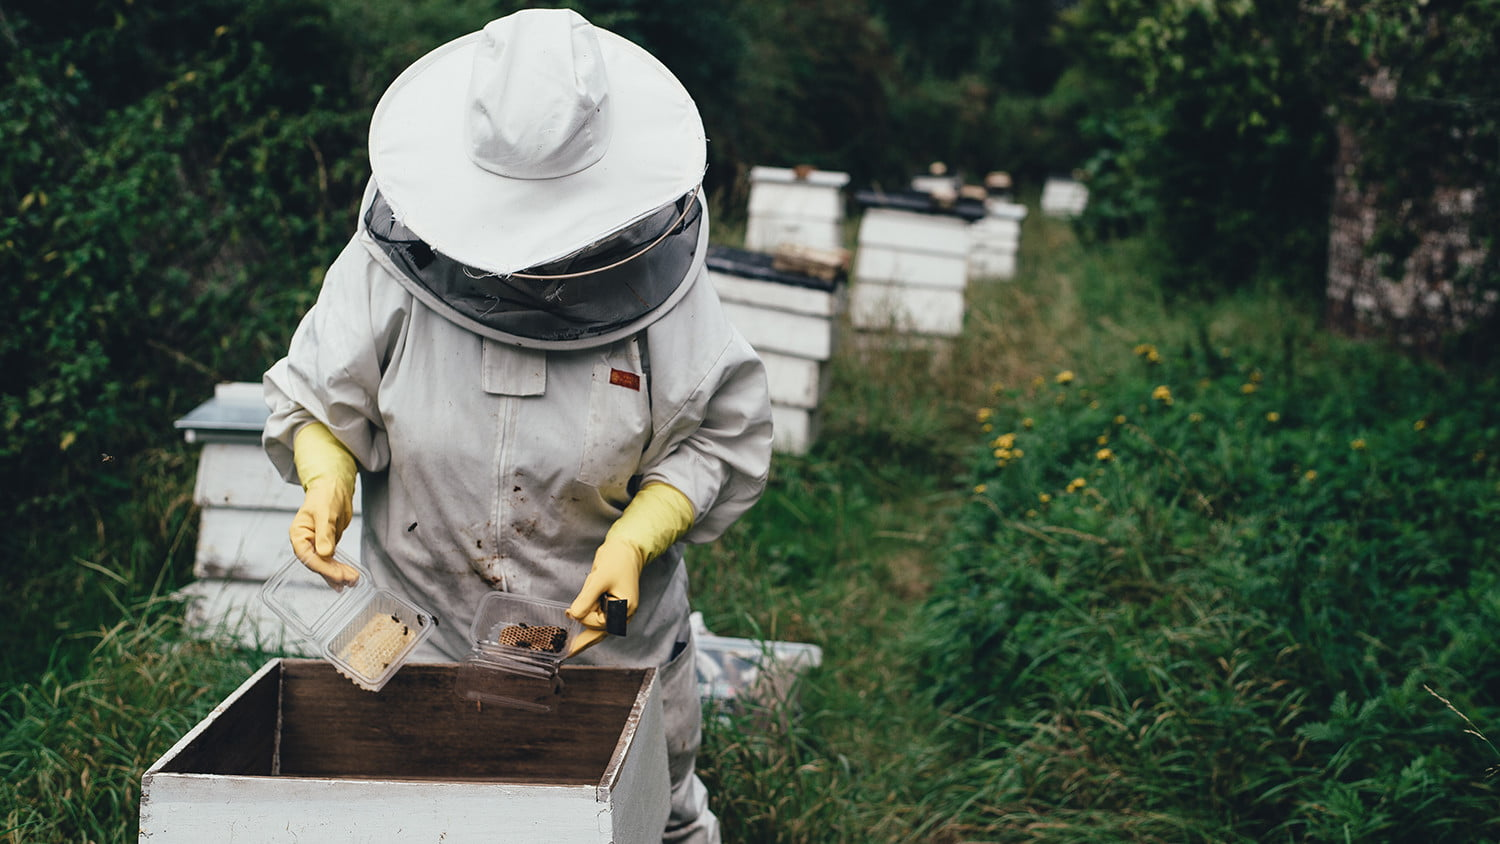 tesla model s and x consumer reports ratings lowered beekeeper ff feat